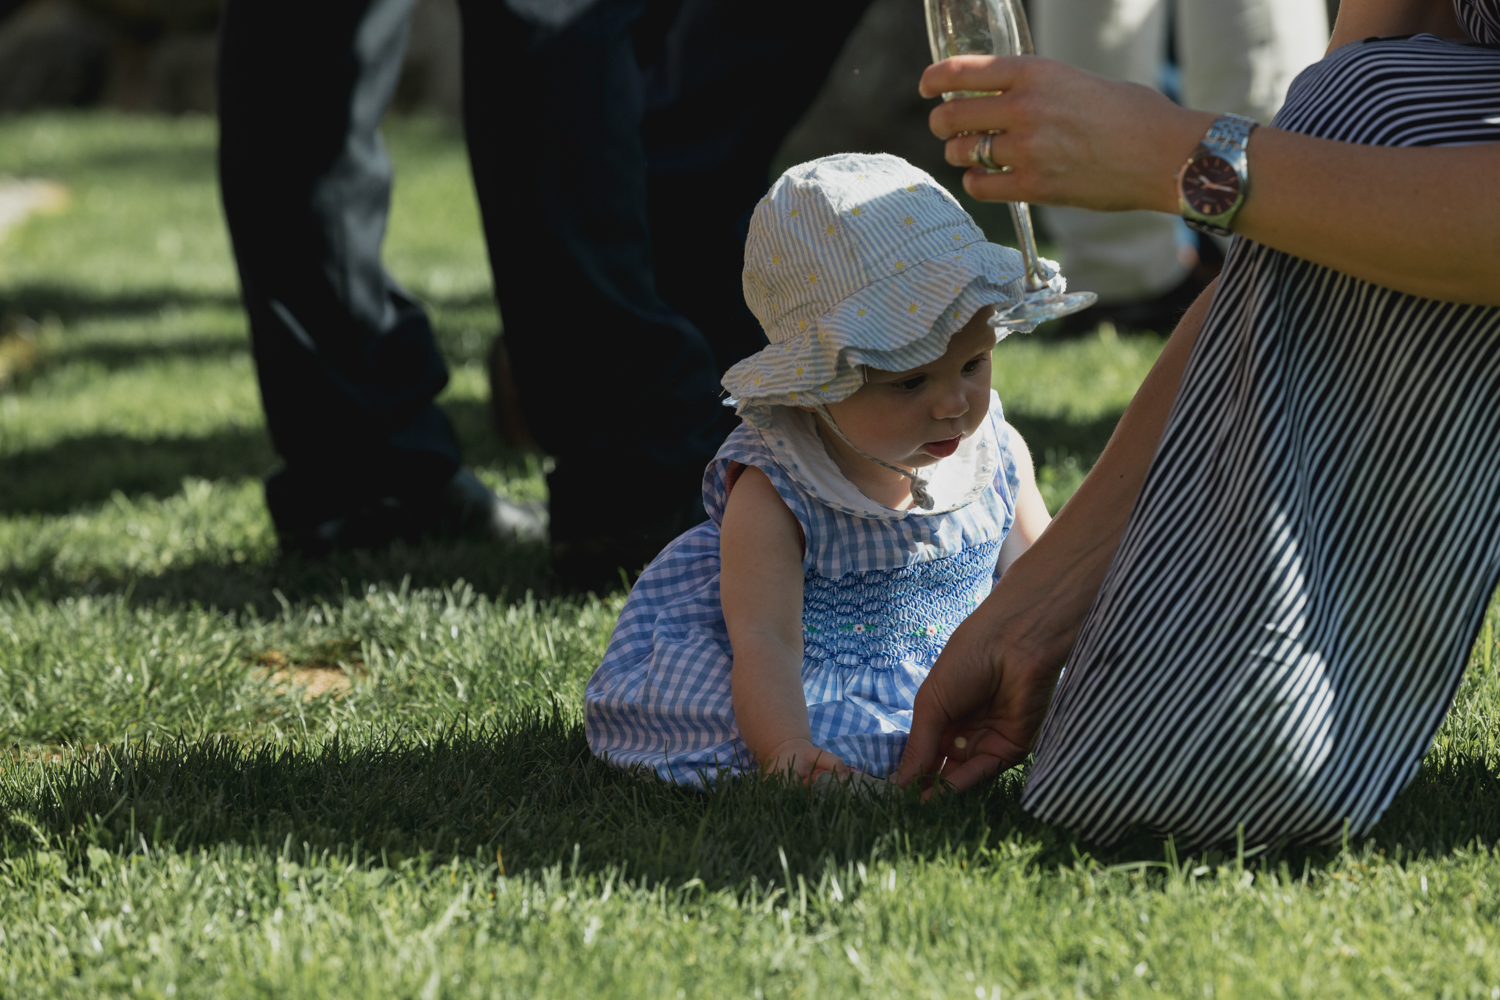 wedding-at-the-red-barn-new-zealand-wedding-photographer-little-girl-playing-in-grass.jpg